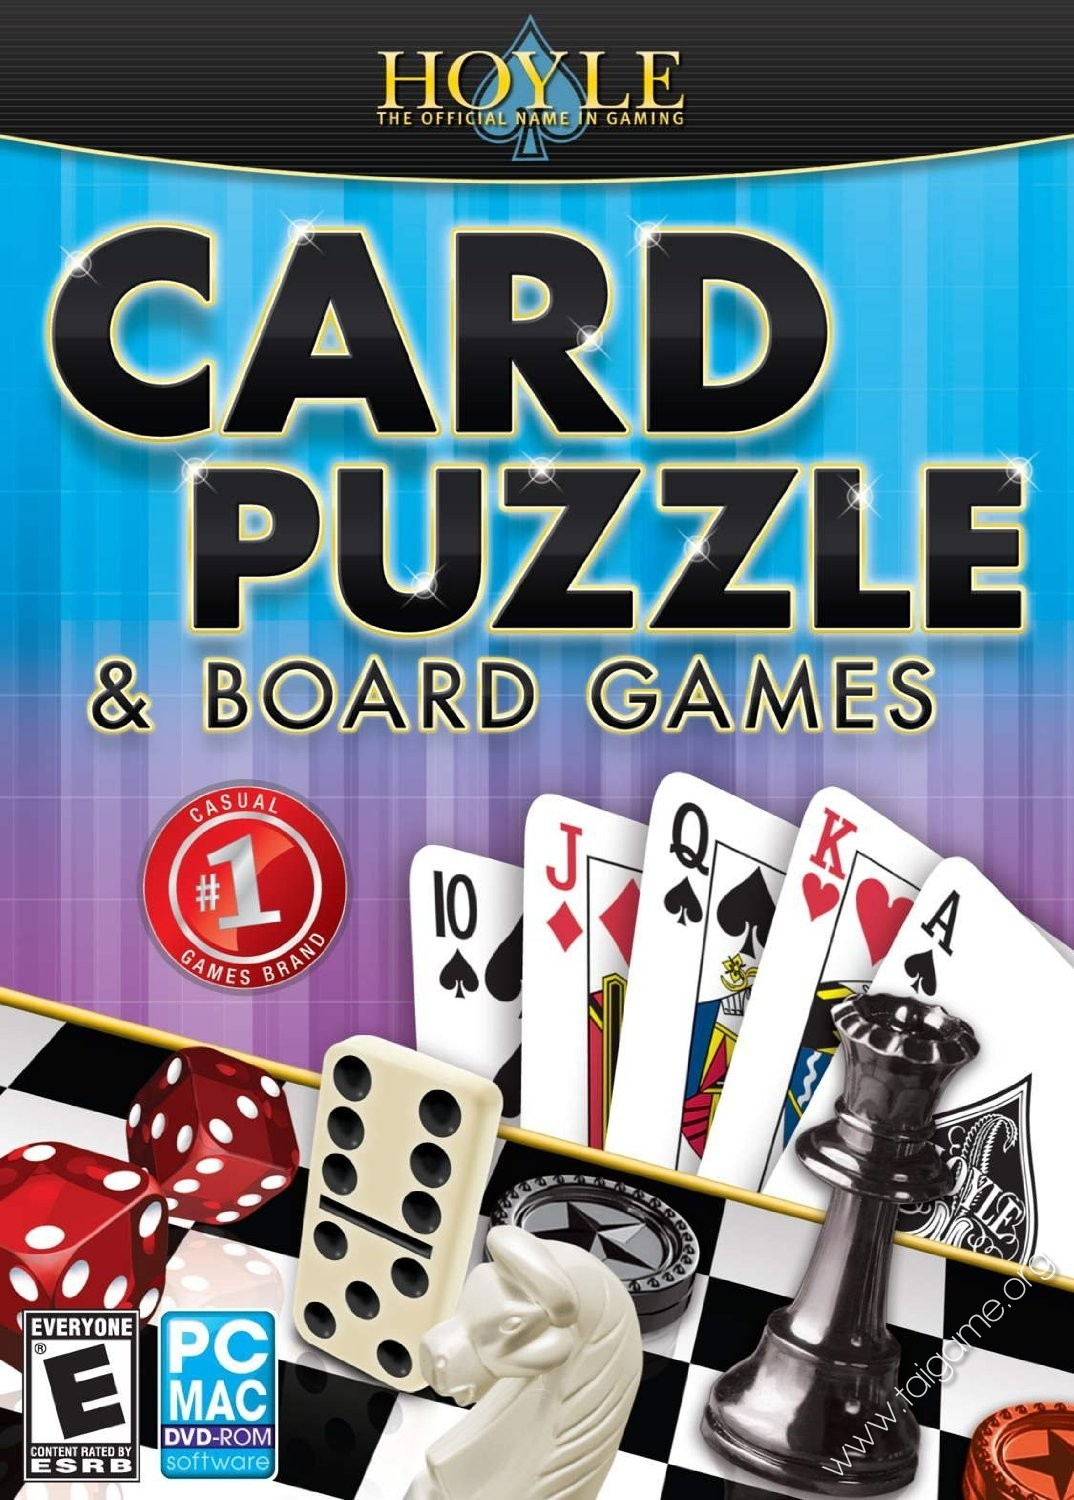 hoyle-2013-card-puzzle-and-board-games-1.jpg